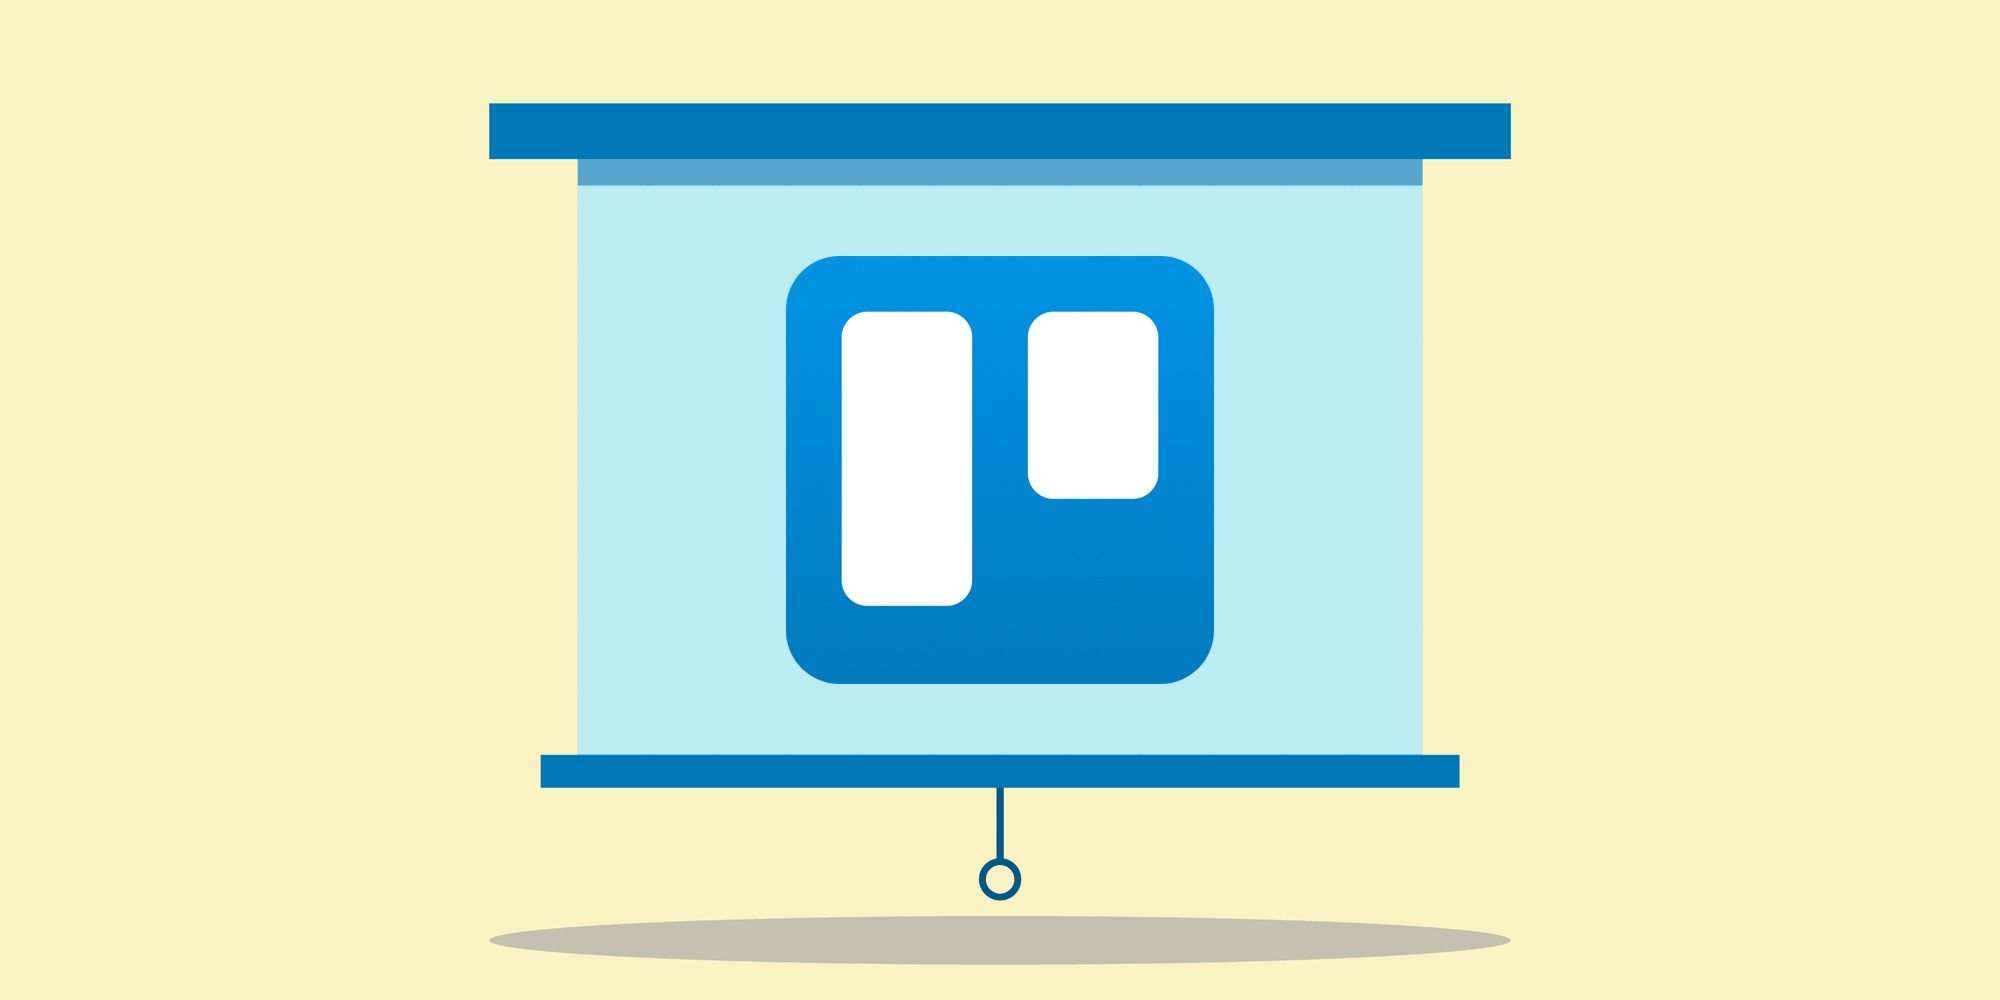 Introducing Trello for Google Slides (With images